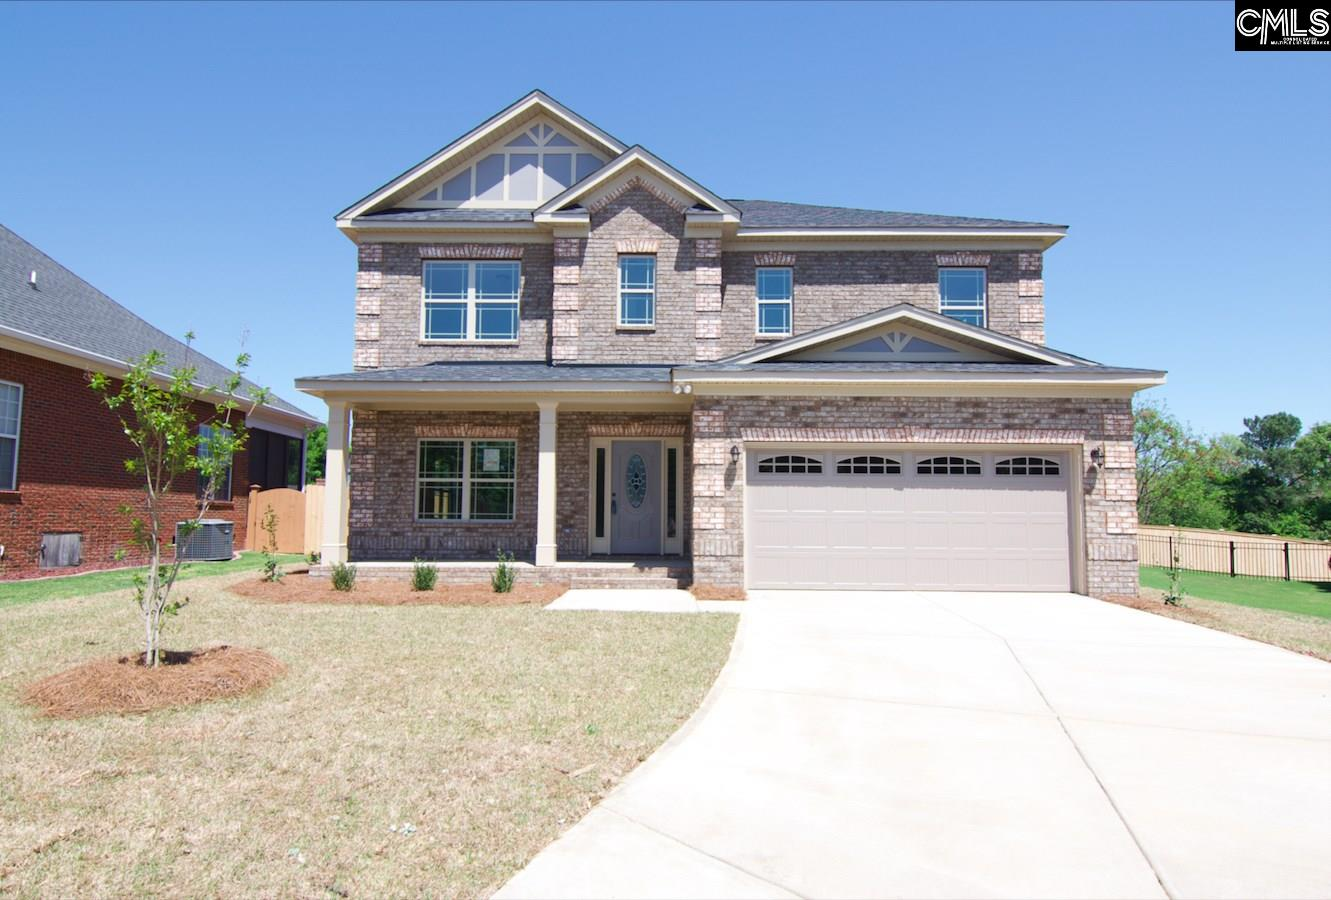 169  Royal Lythan #18 Lexington, SC 29072